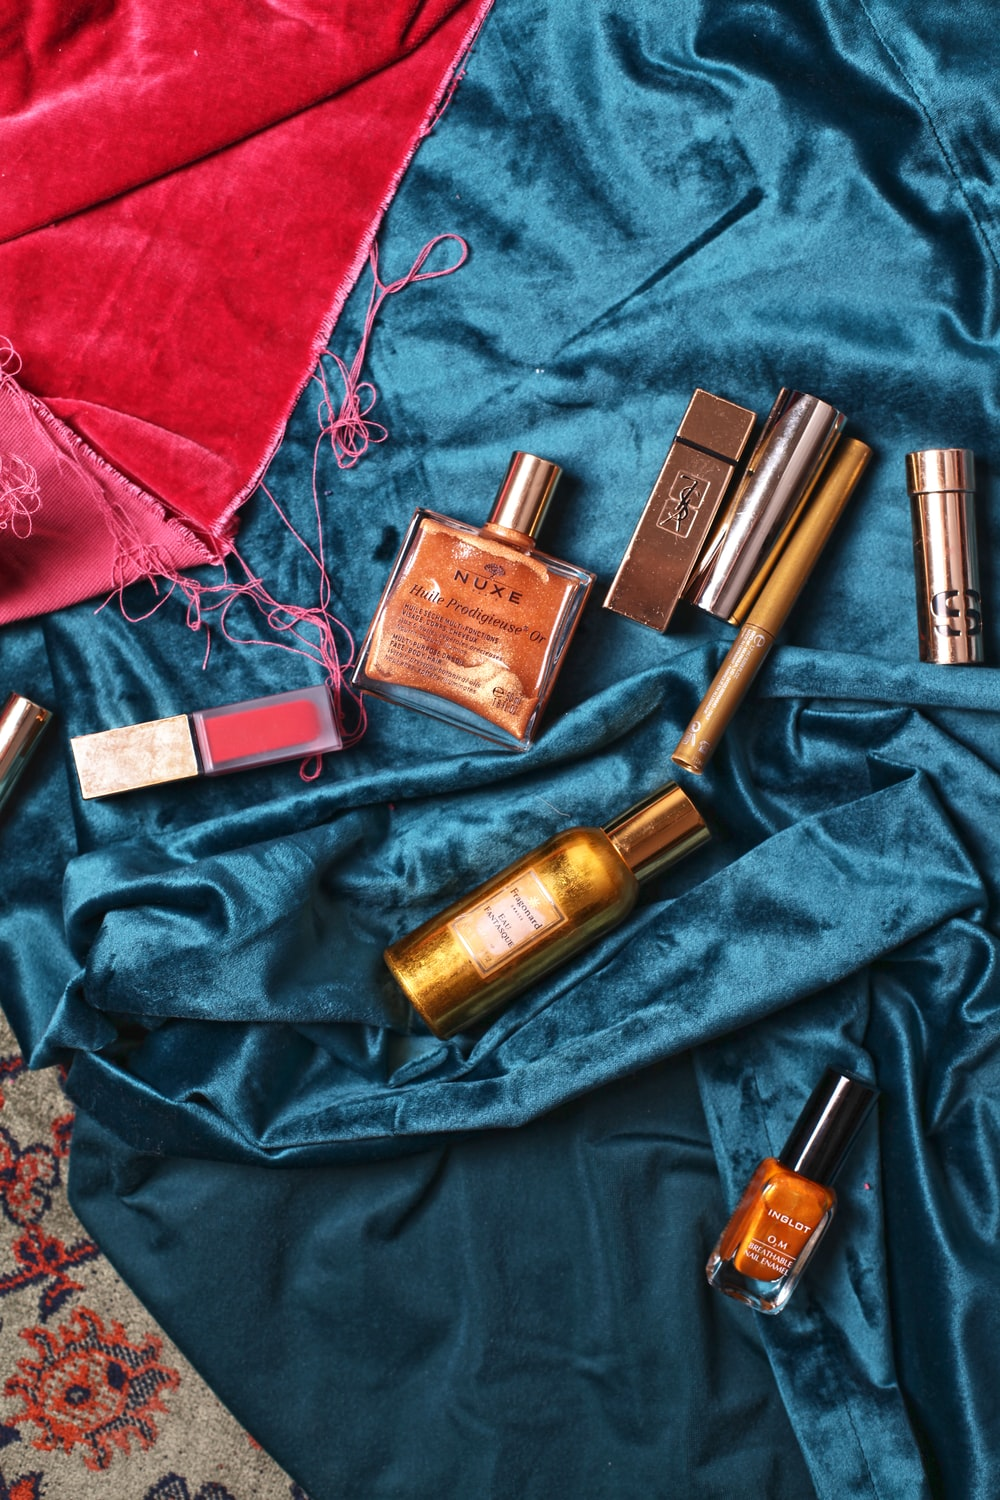 assorted cosmetics on teal textile